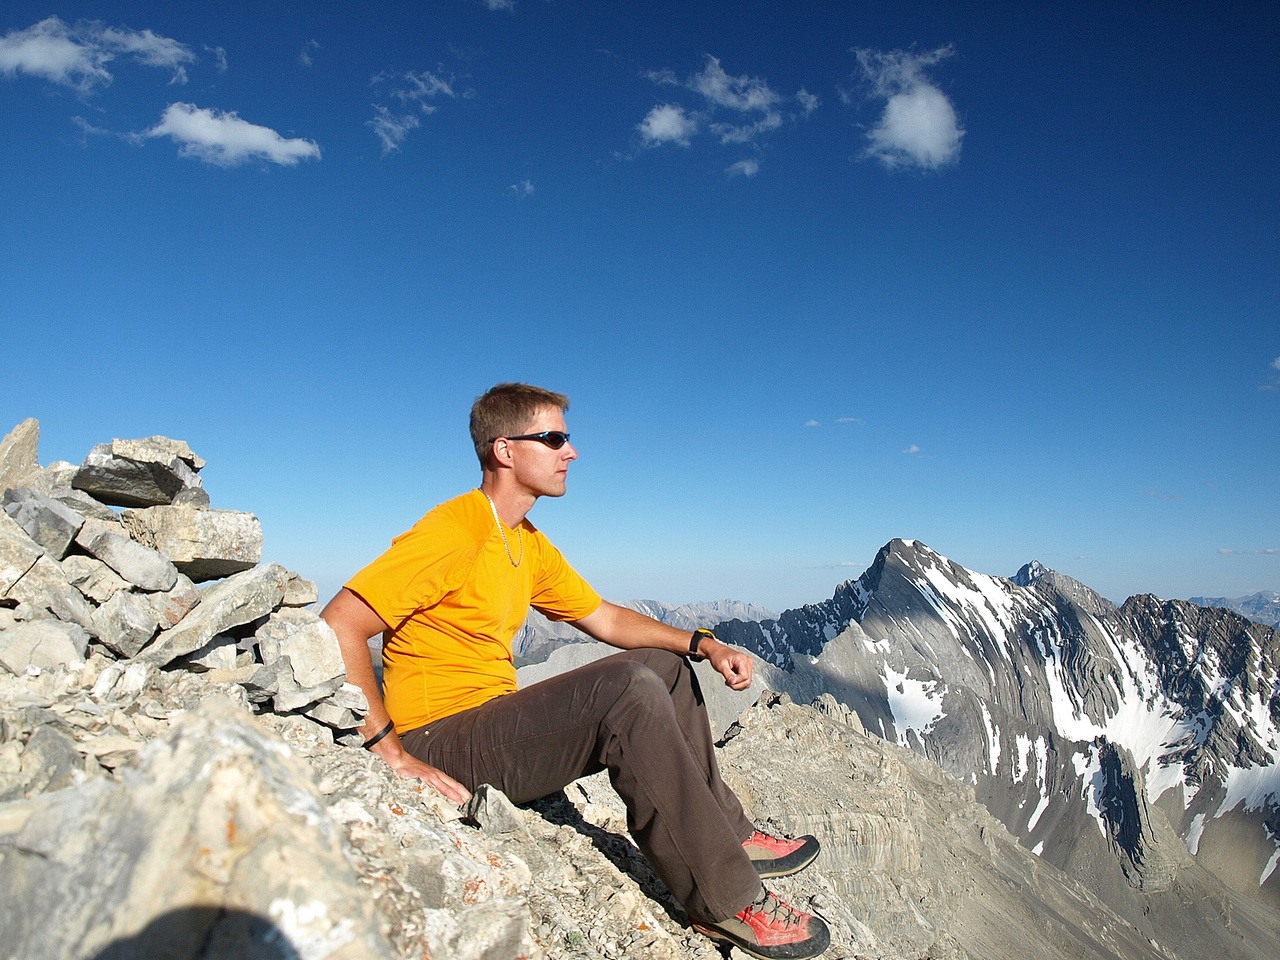 Vern on the summit with Storm Mountain to the south.